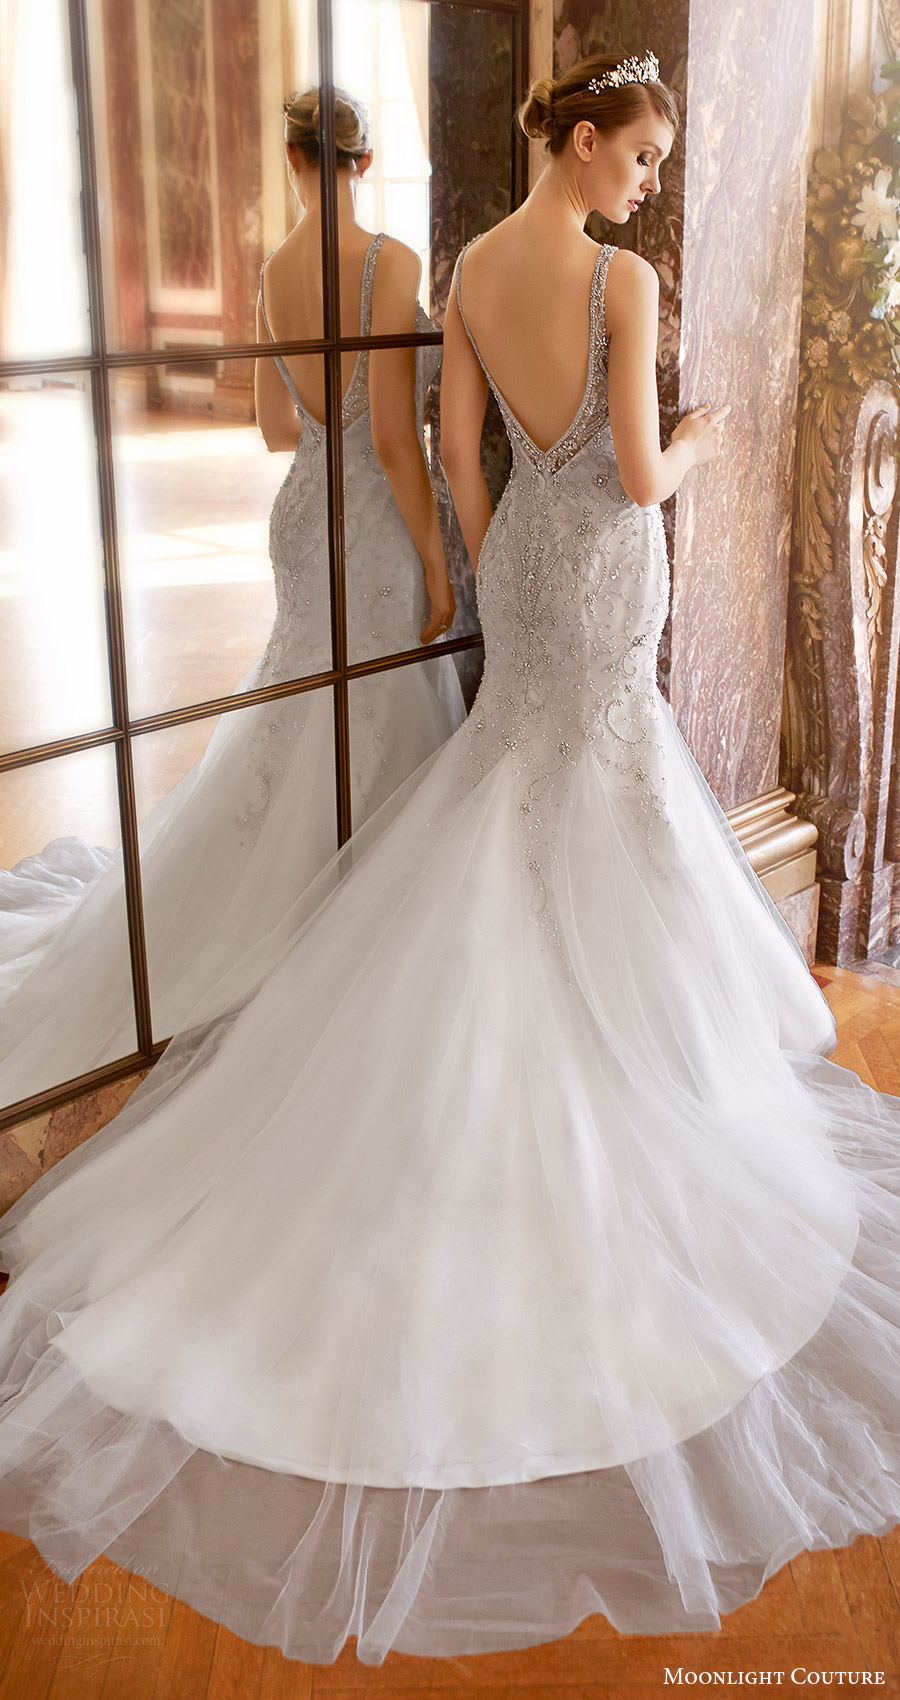 moonlight couture bridal fall 2016 sleeveless vneck beaded bodice mermaid wedding dress (h1319) bv low back train